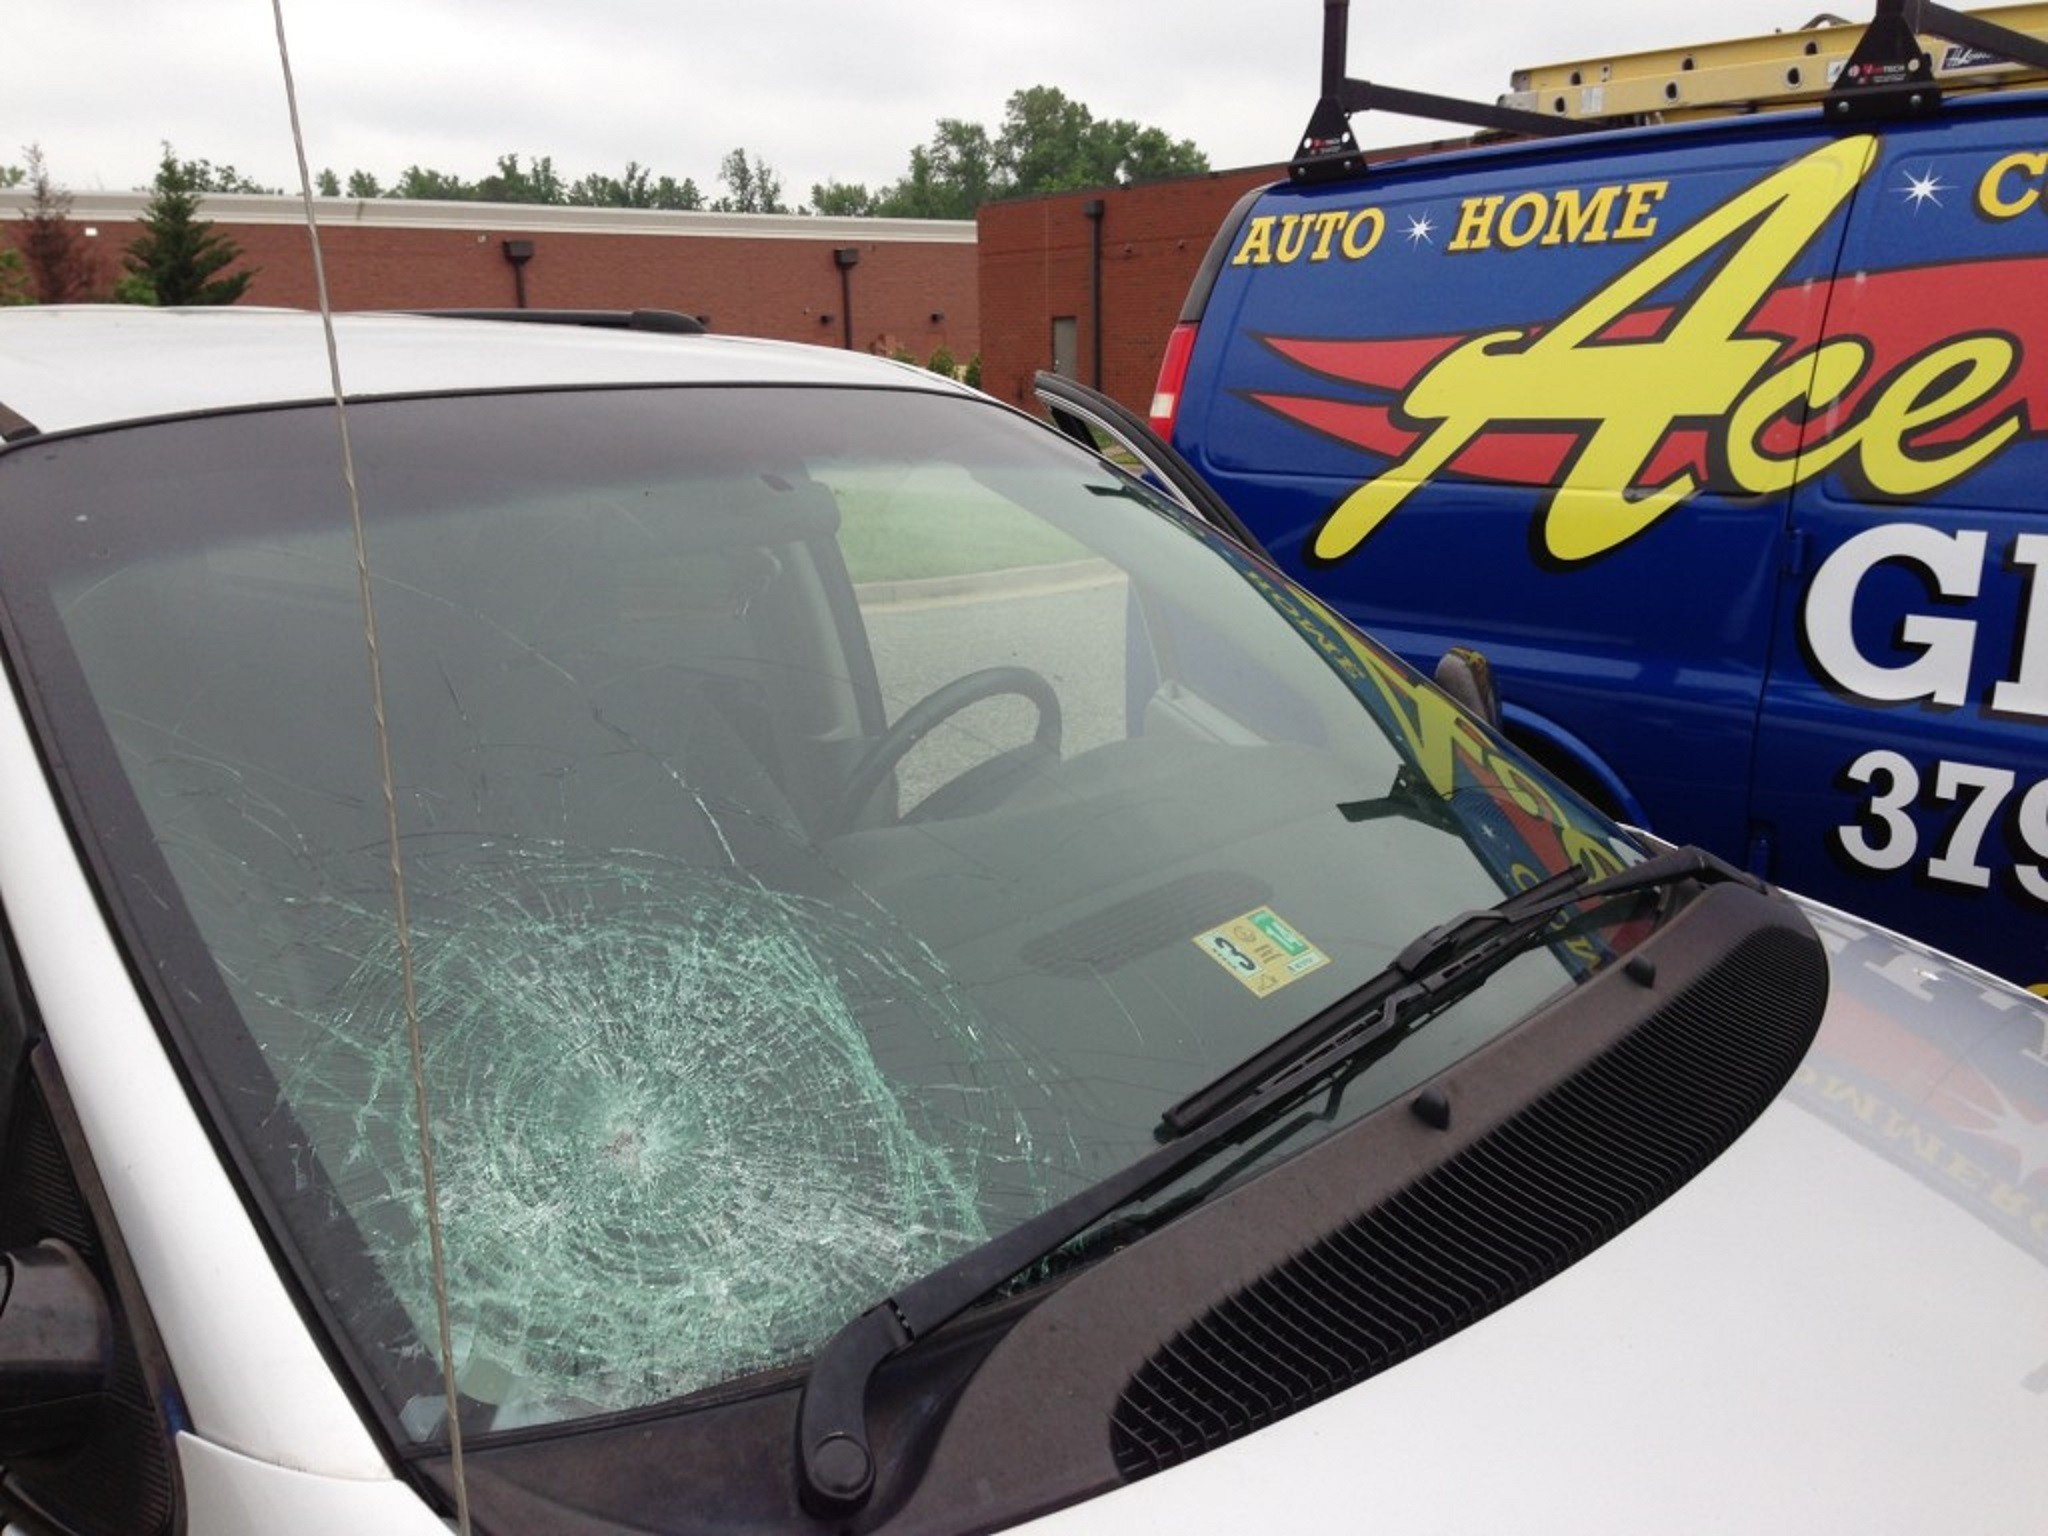 Auto Glass Quote Mobile Auto Glass Repair In Richmond Va  Ace Glass